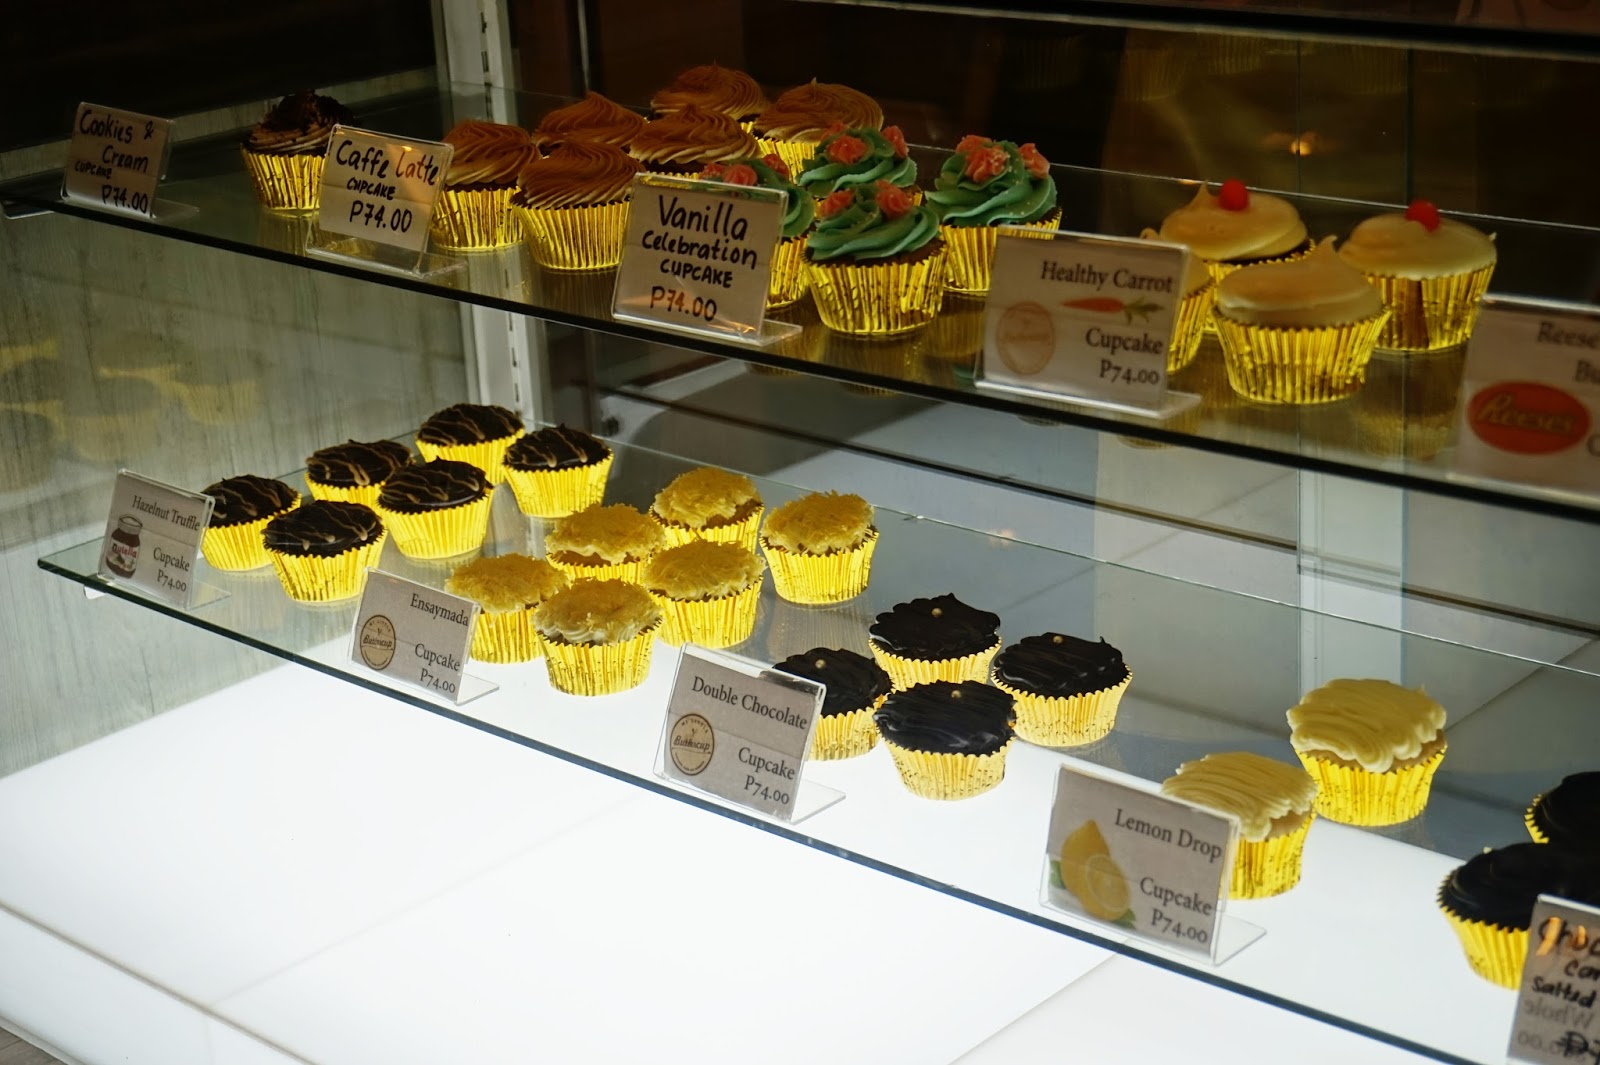 my little buttercup bakery and cafe's cupcakes display